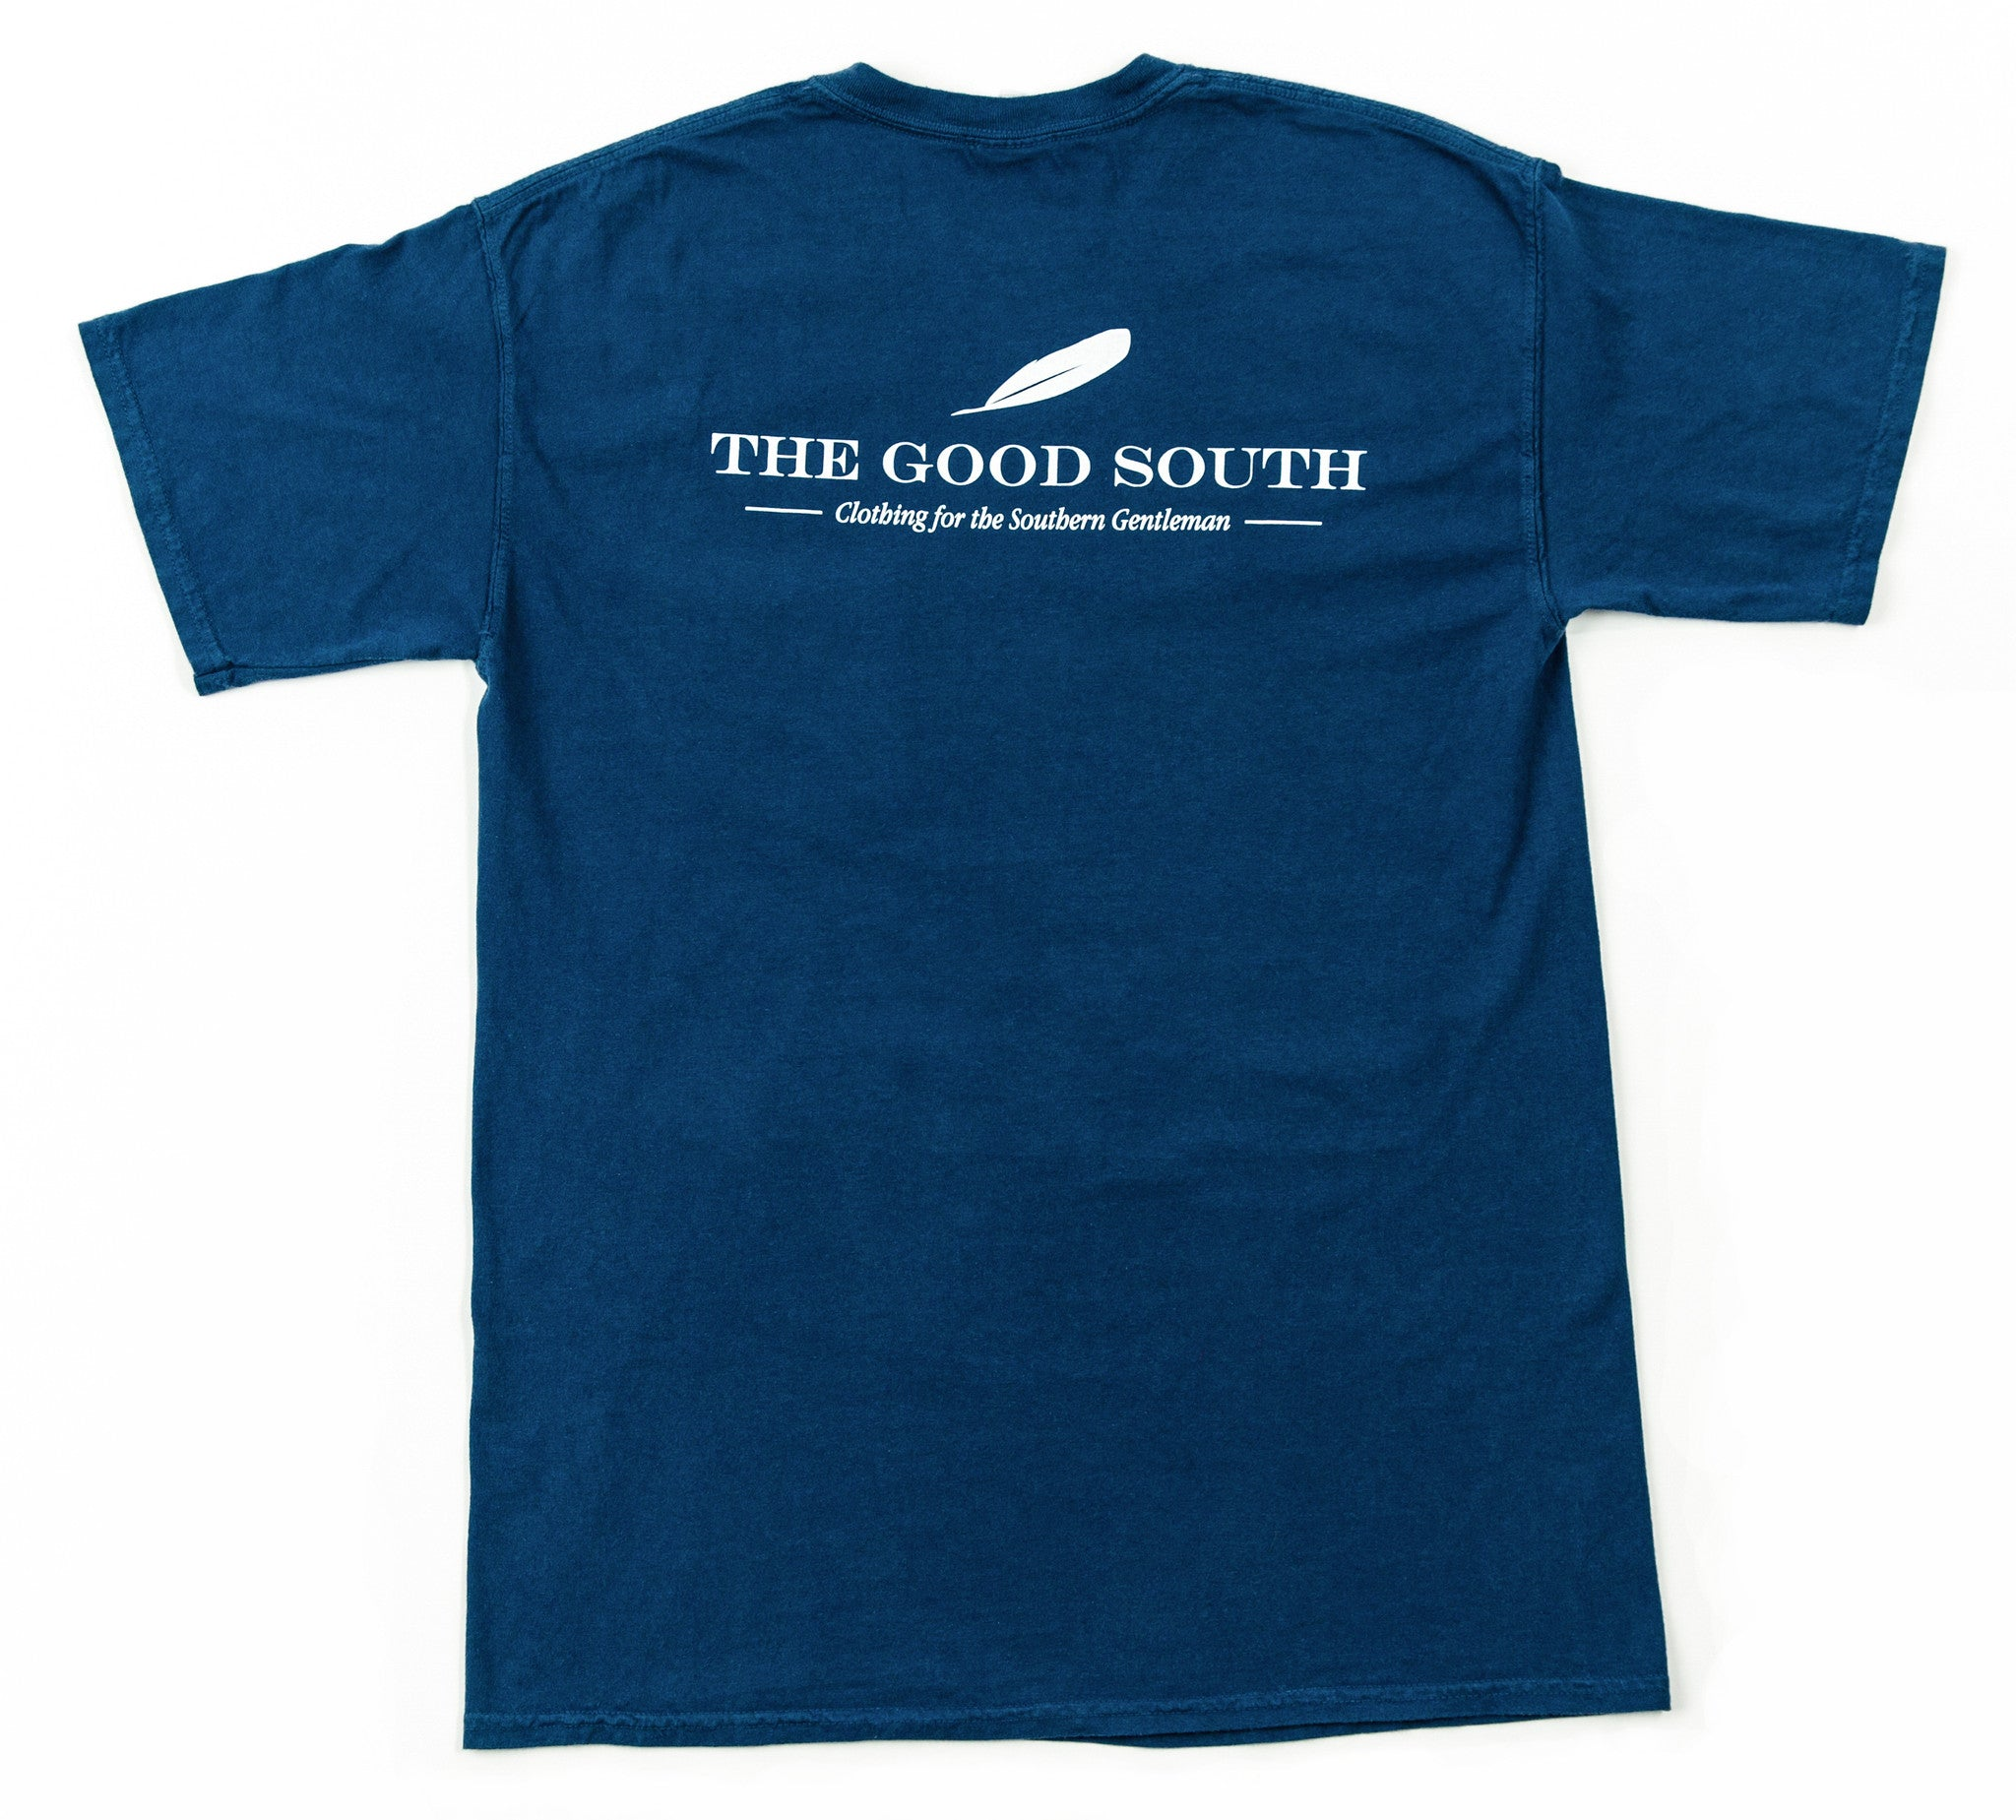 The Good South T-Shirt